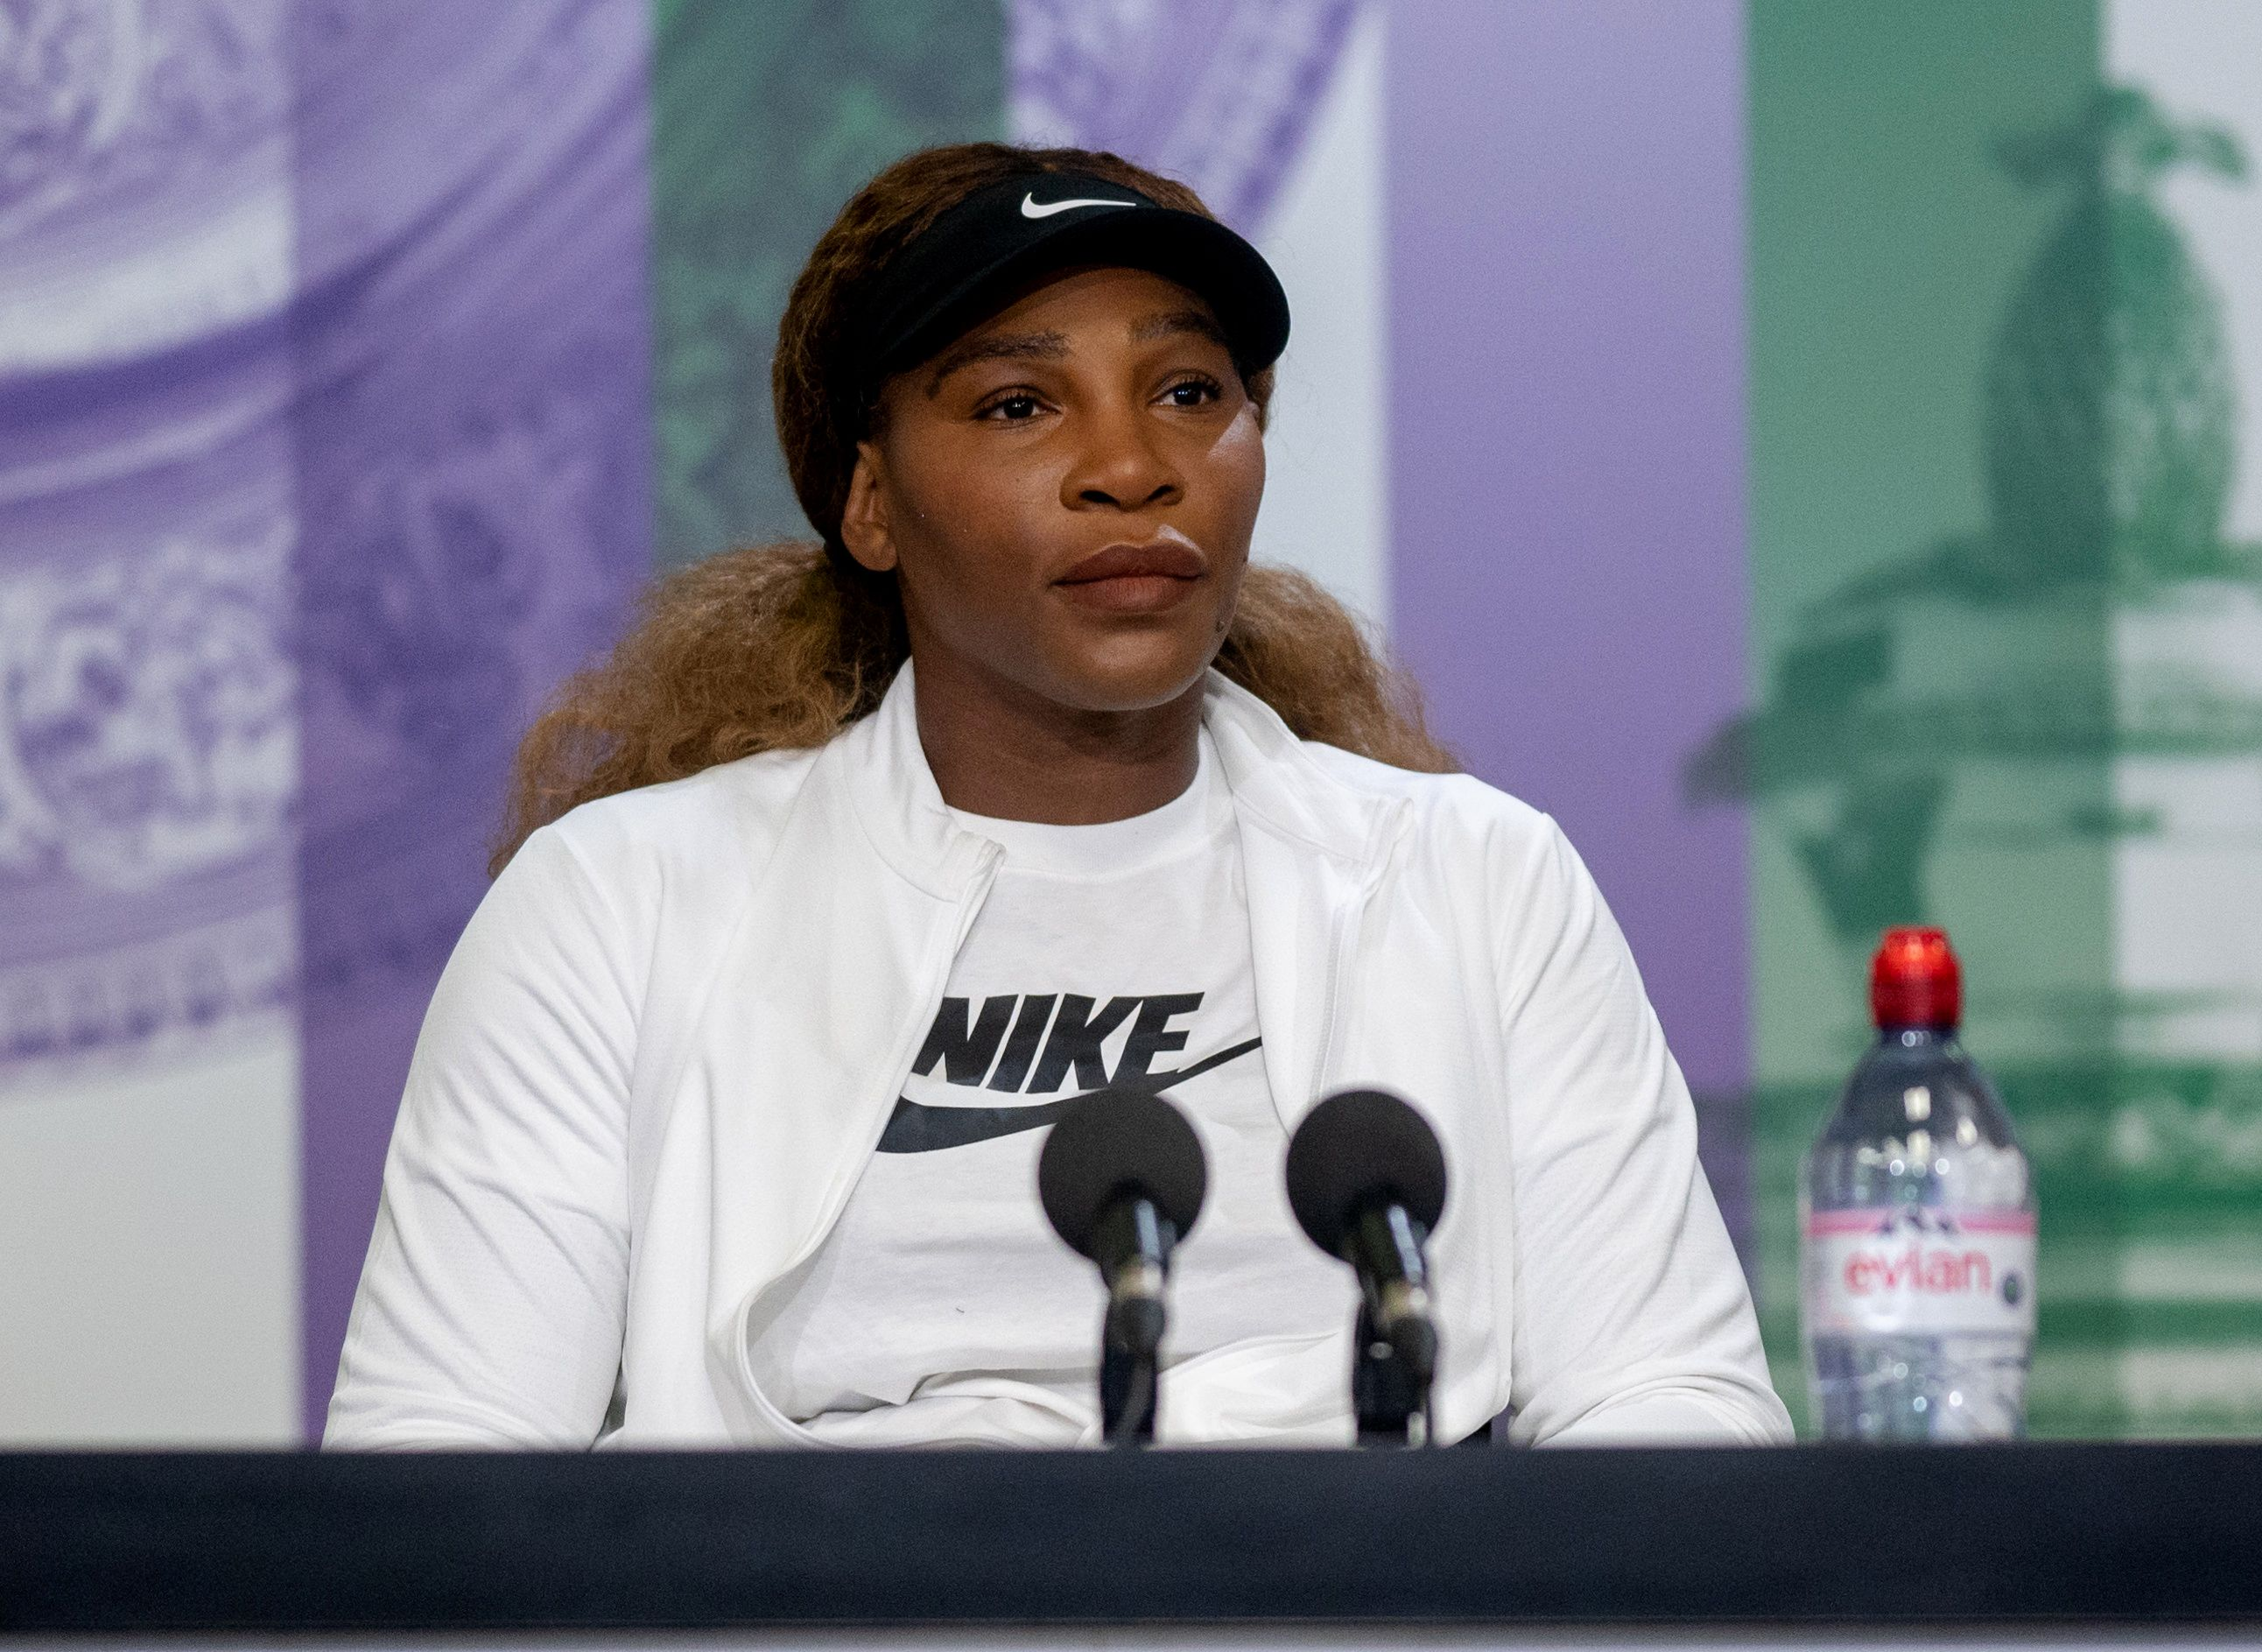 Tennis - Wimbledon - All England Lawn Tennis and Croquet Club, London, Britain - June 27, 2021 Serena Williams of the U.S. during a press conference Pool via REUTERS/Florian Eisele